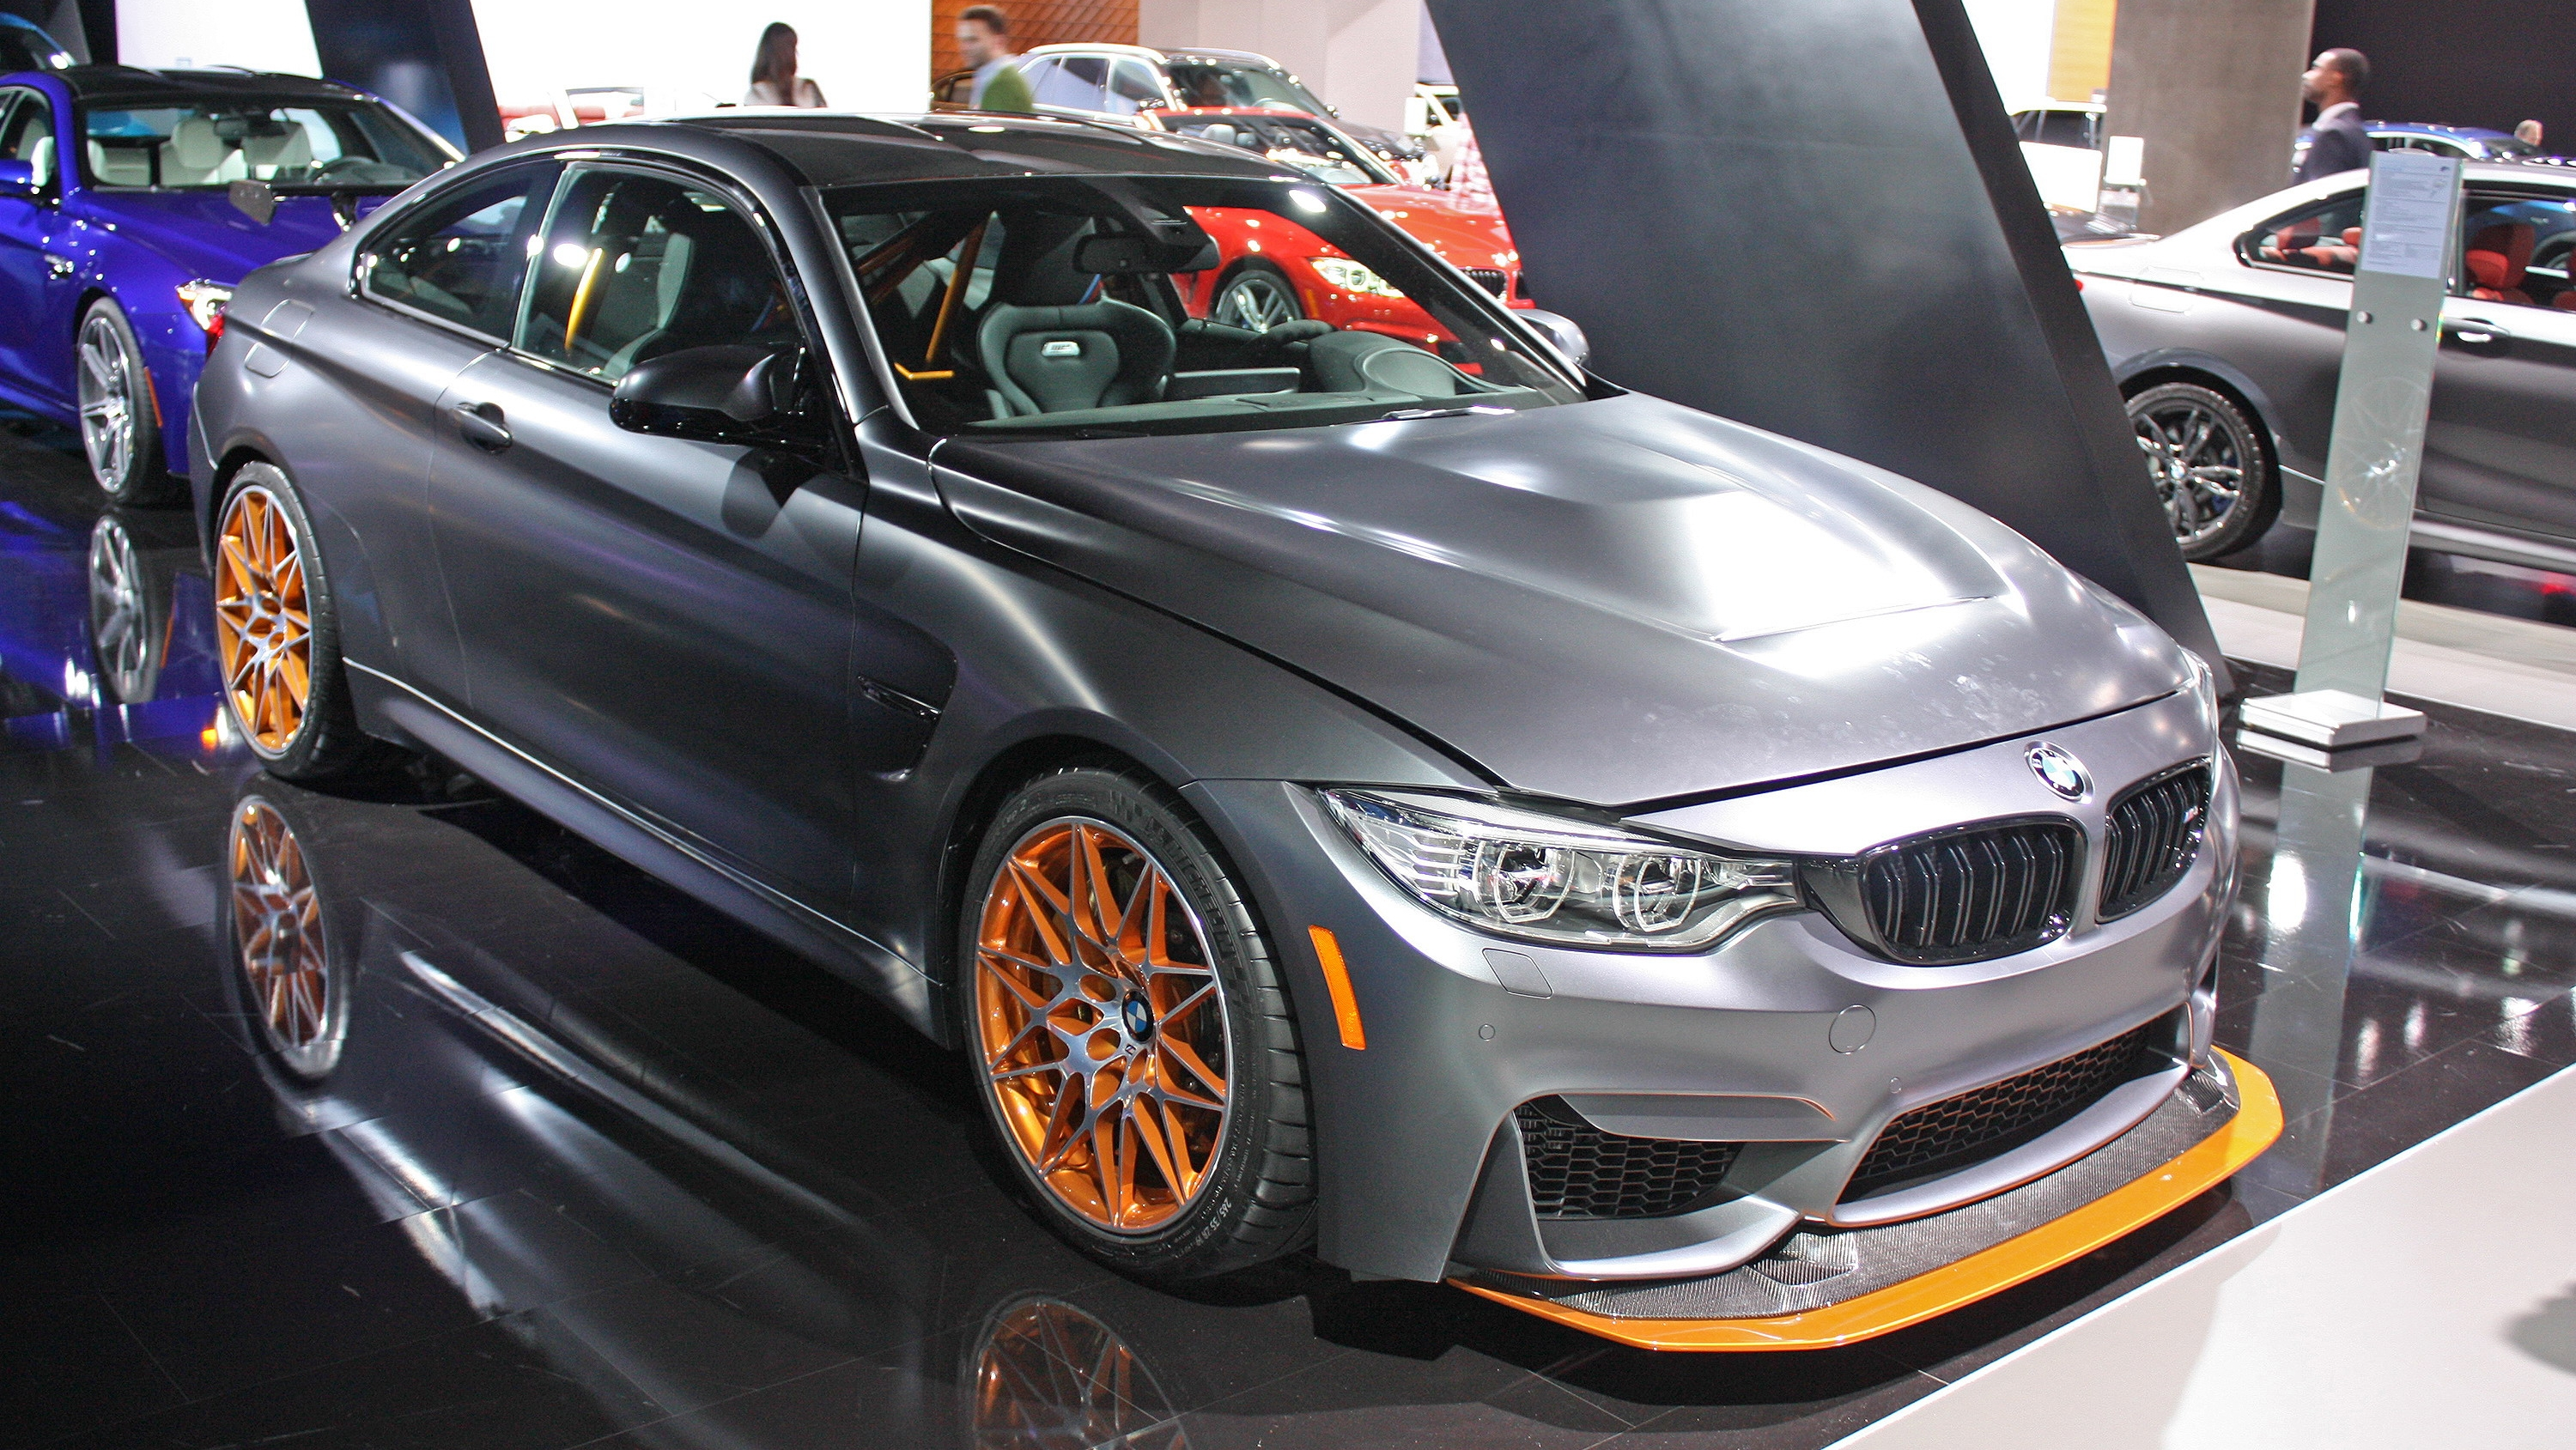 2016 bmw m4 gts gallery 656896 top speed. Black Bedroom Furniture Sets. Home Design Ideas